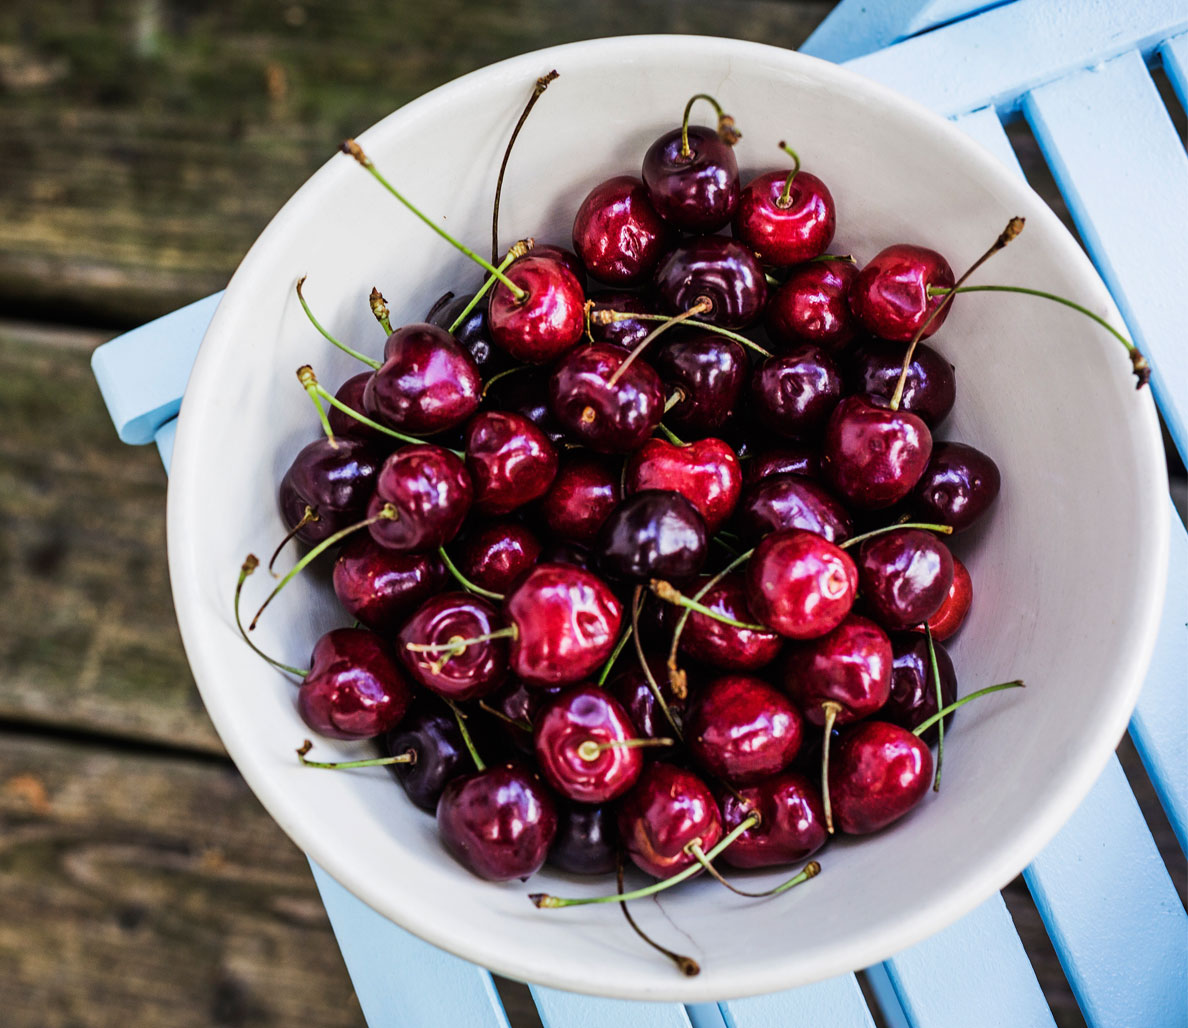 5 health benefits of tart cherries